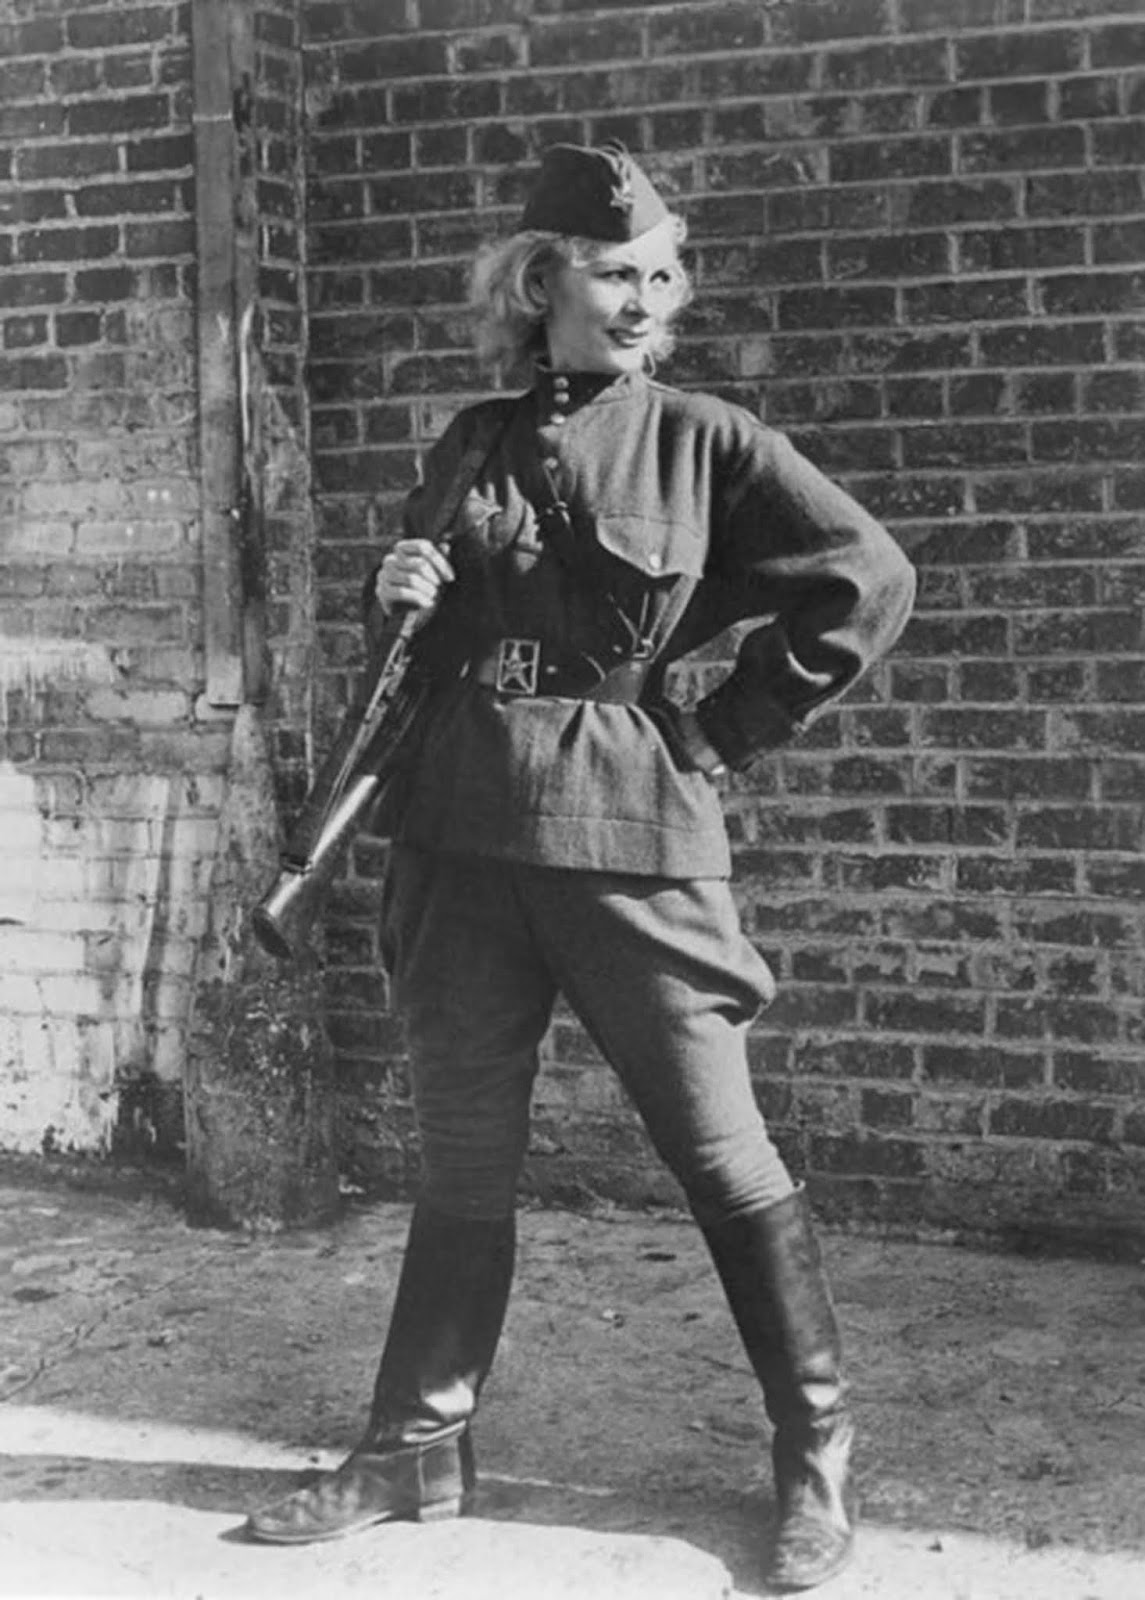 Kyra Petrovskaya was a Russian-American author, actress and a sniper during World War II.